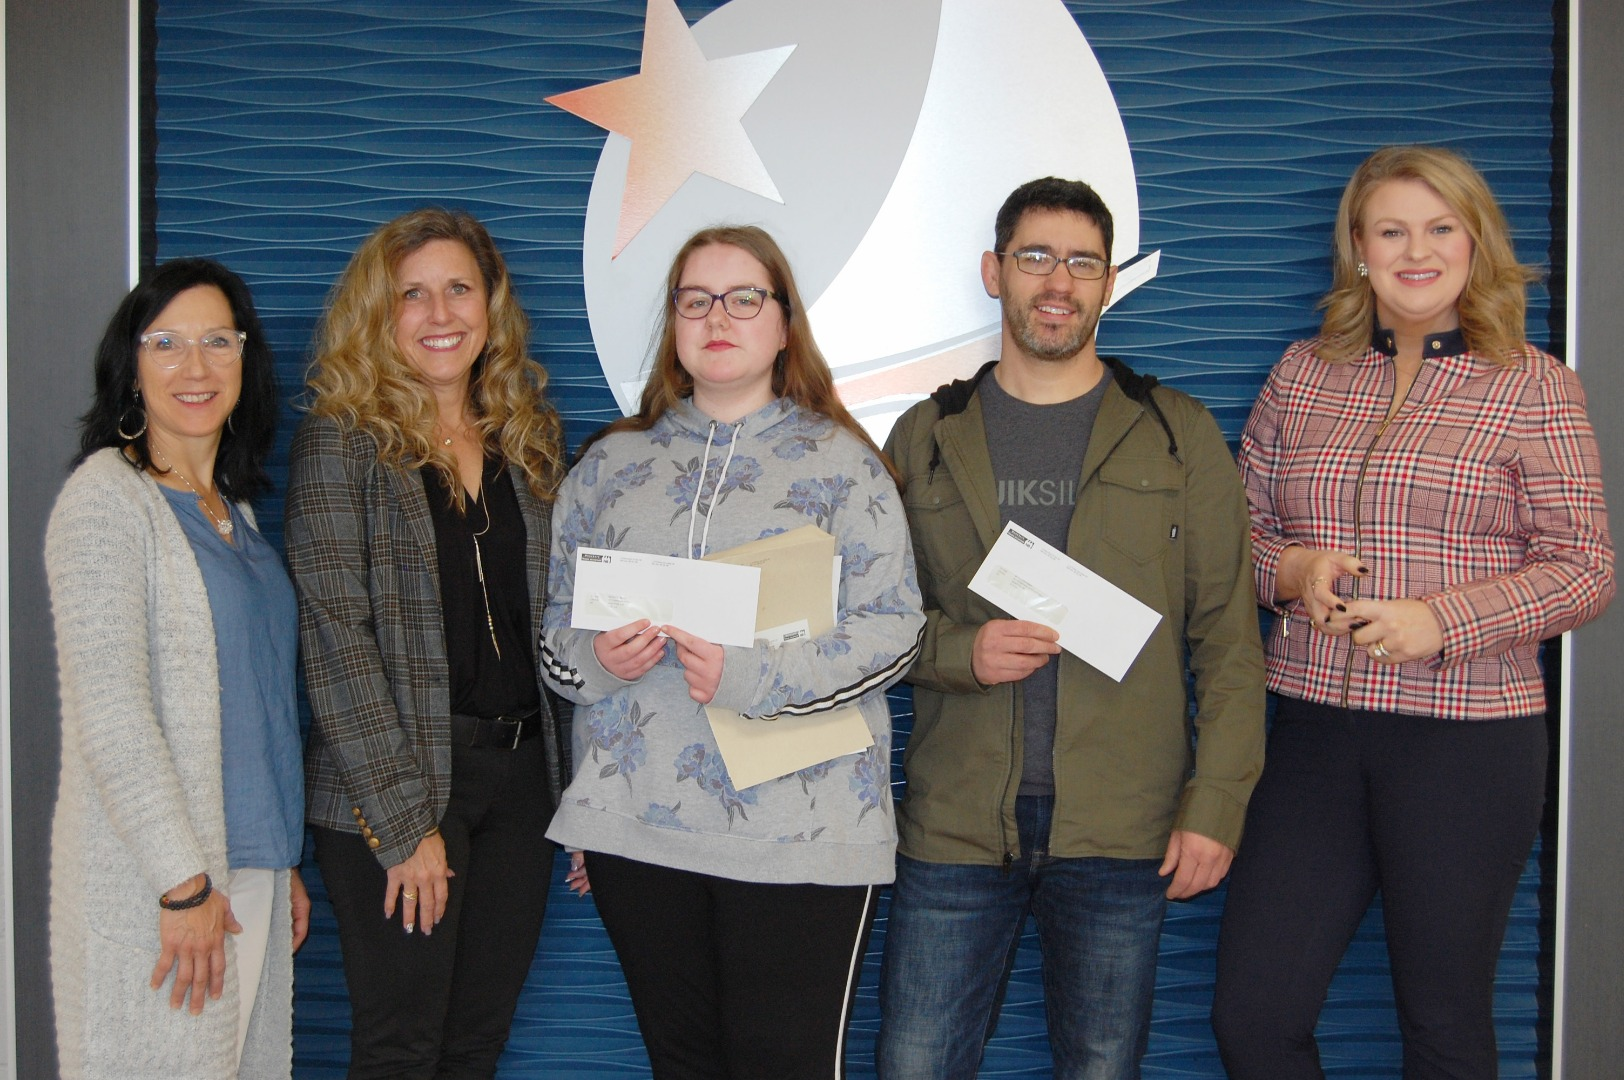 From left to right: Monique Hébert-Savoie, principal of l'École l'Odyssée ; Brigitte LeBlanc-Miller, WorkSafeNB; Macey Thibeau, first place winner; Frédérick Harrison, teacher; and Laragh Dooley, acting director of Communications WorkSafeNB